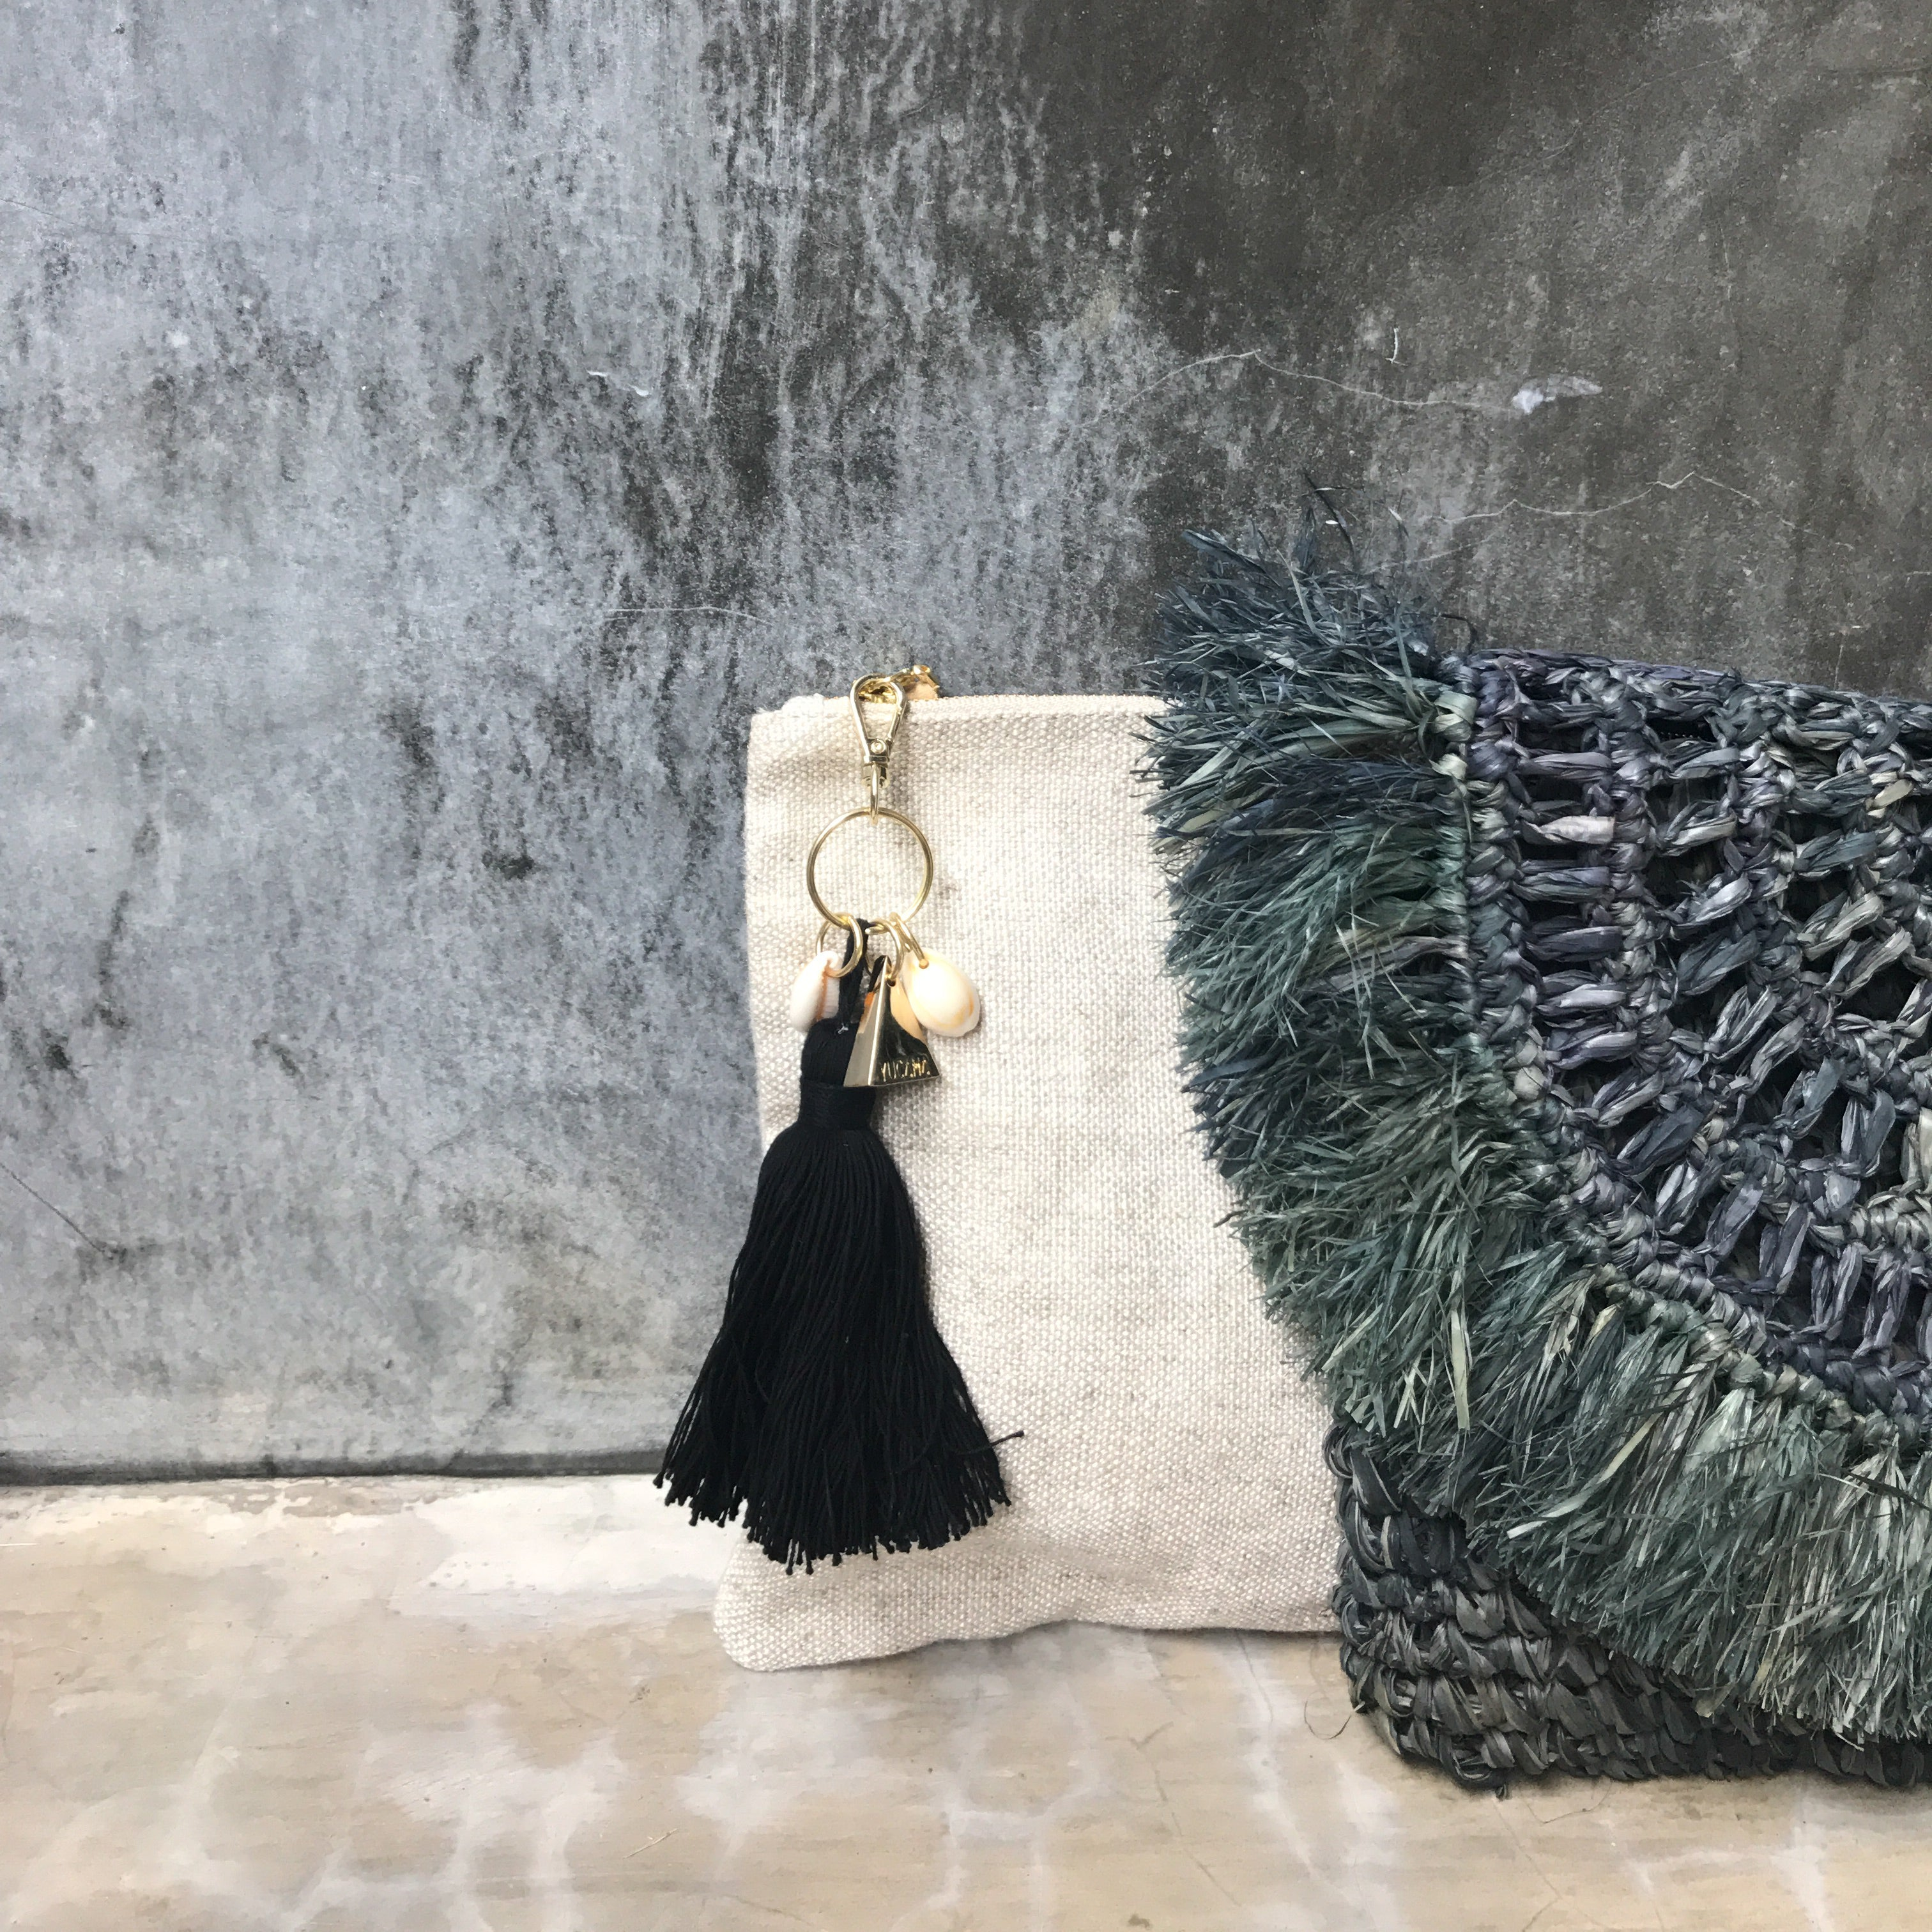 island-vibes-tassel-clutch-bag